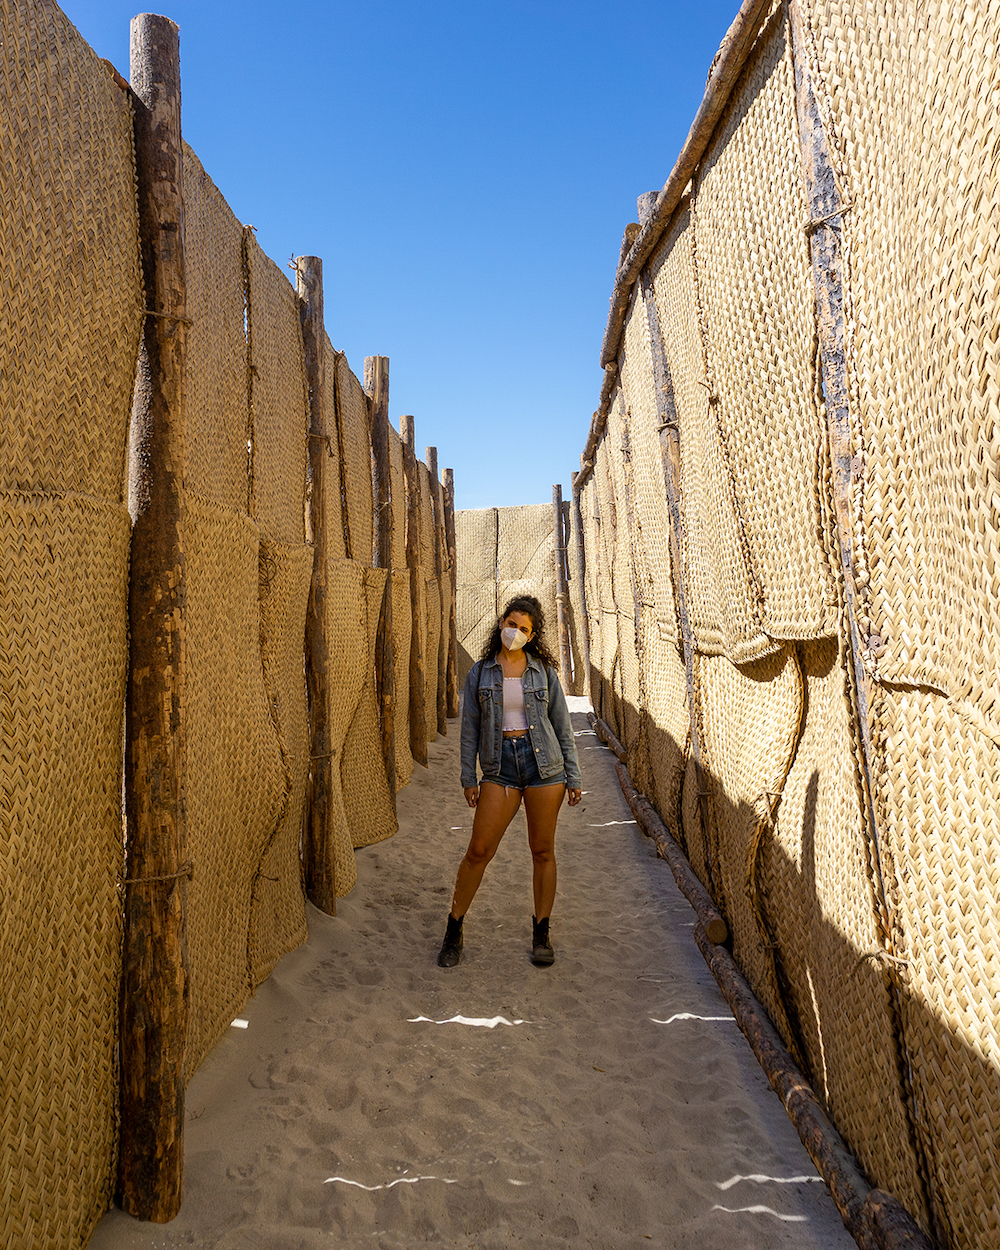 desert x 2021 the passenger maze art installation by eduardo sarabia